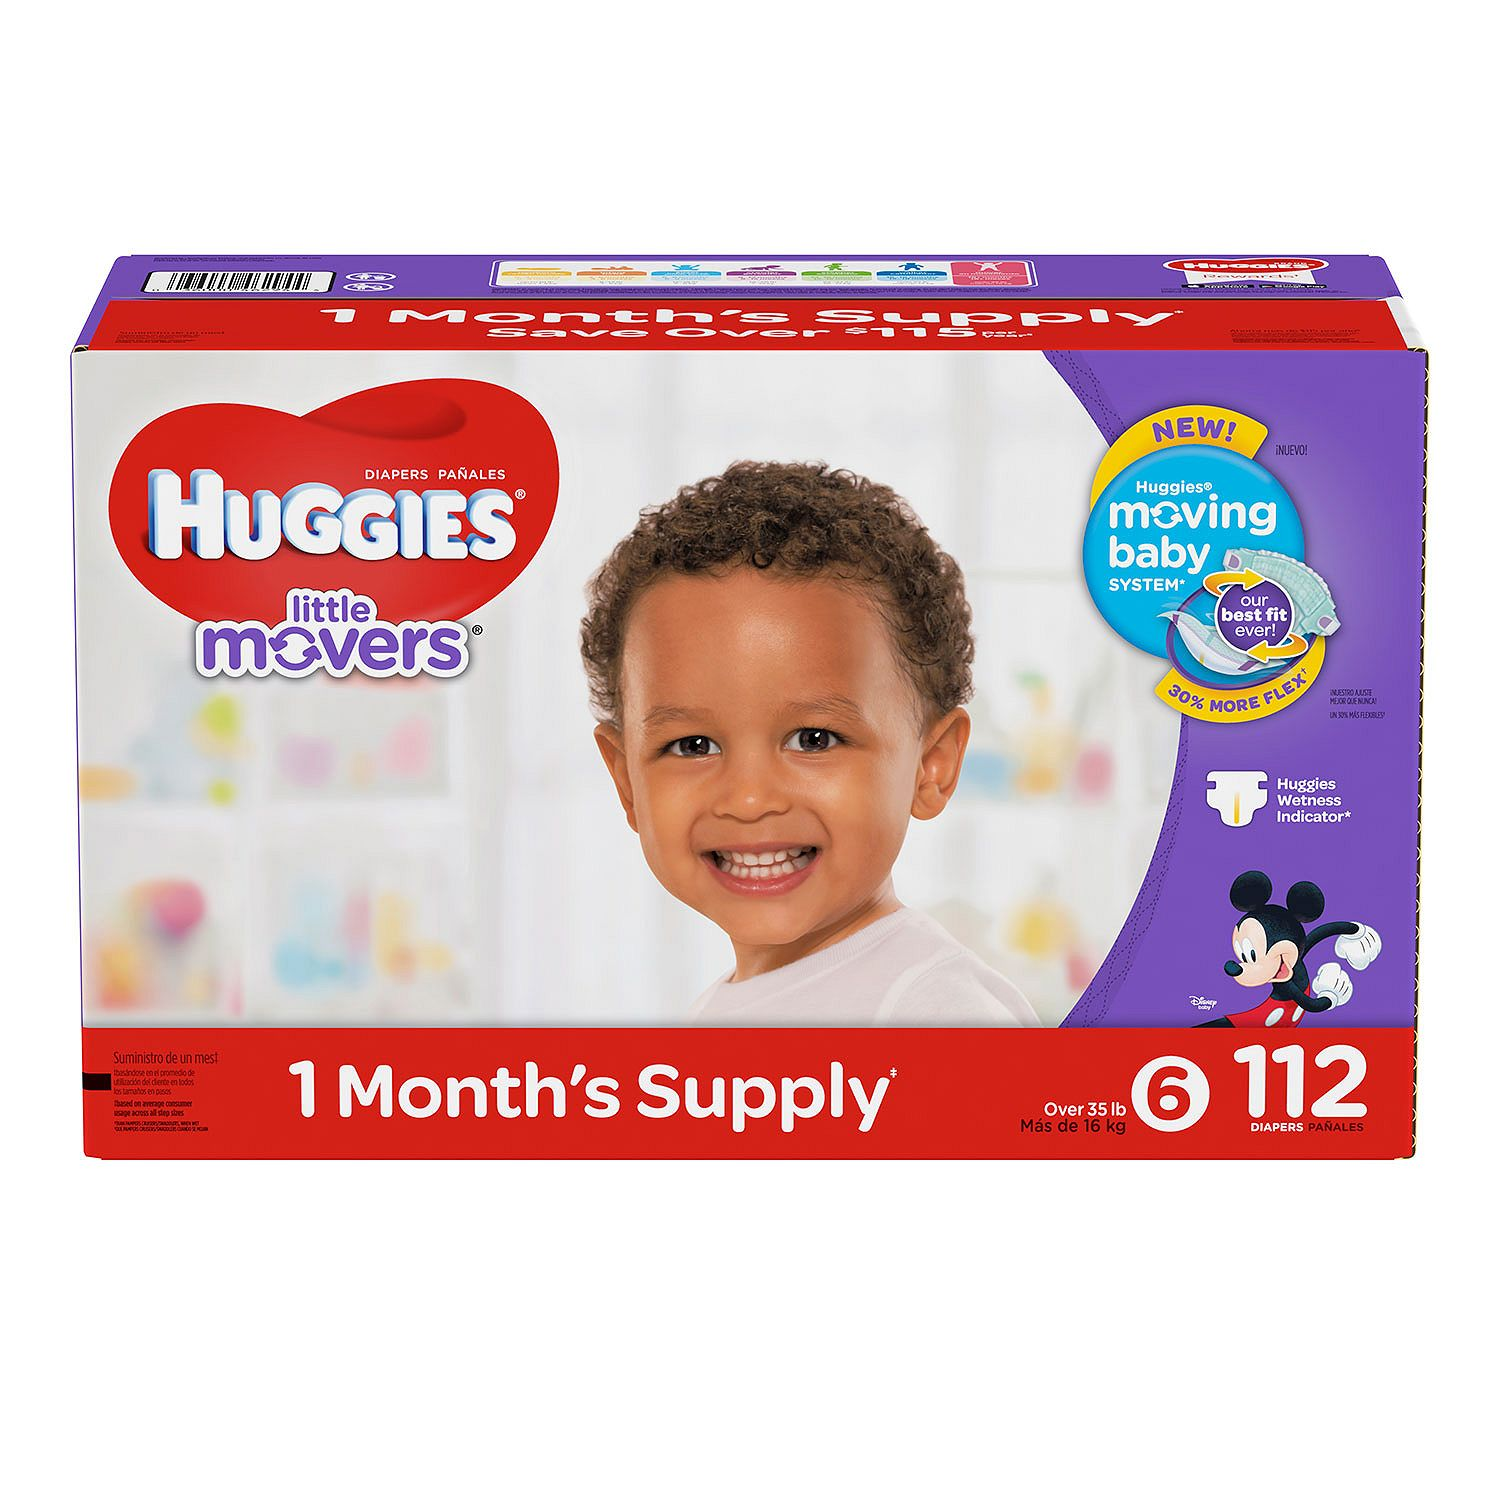 Huggies Little Movers Diapers Size 6 - 112 ct. ( Weight Over 35 lbs.) - Bulk Qty, Free Shipping - Comfortable, Soft, No leaking & Good nite Diapers